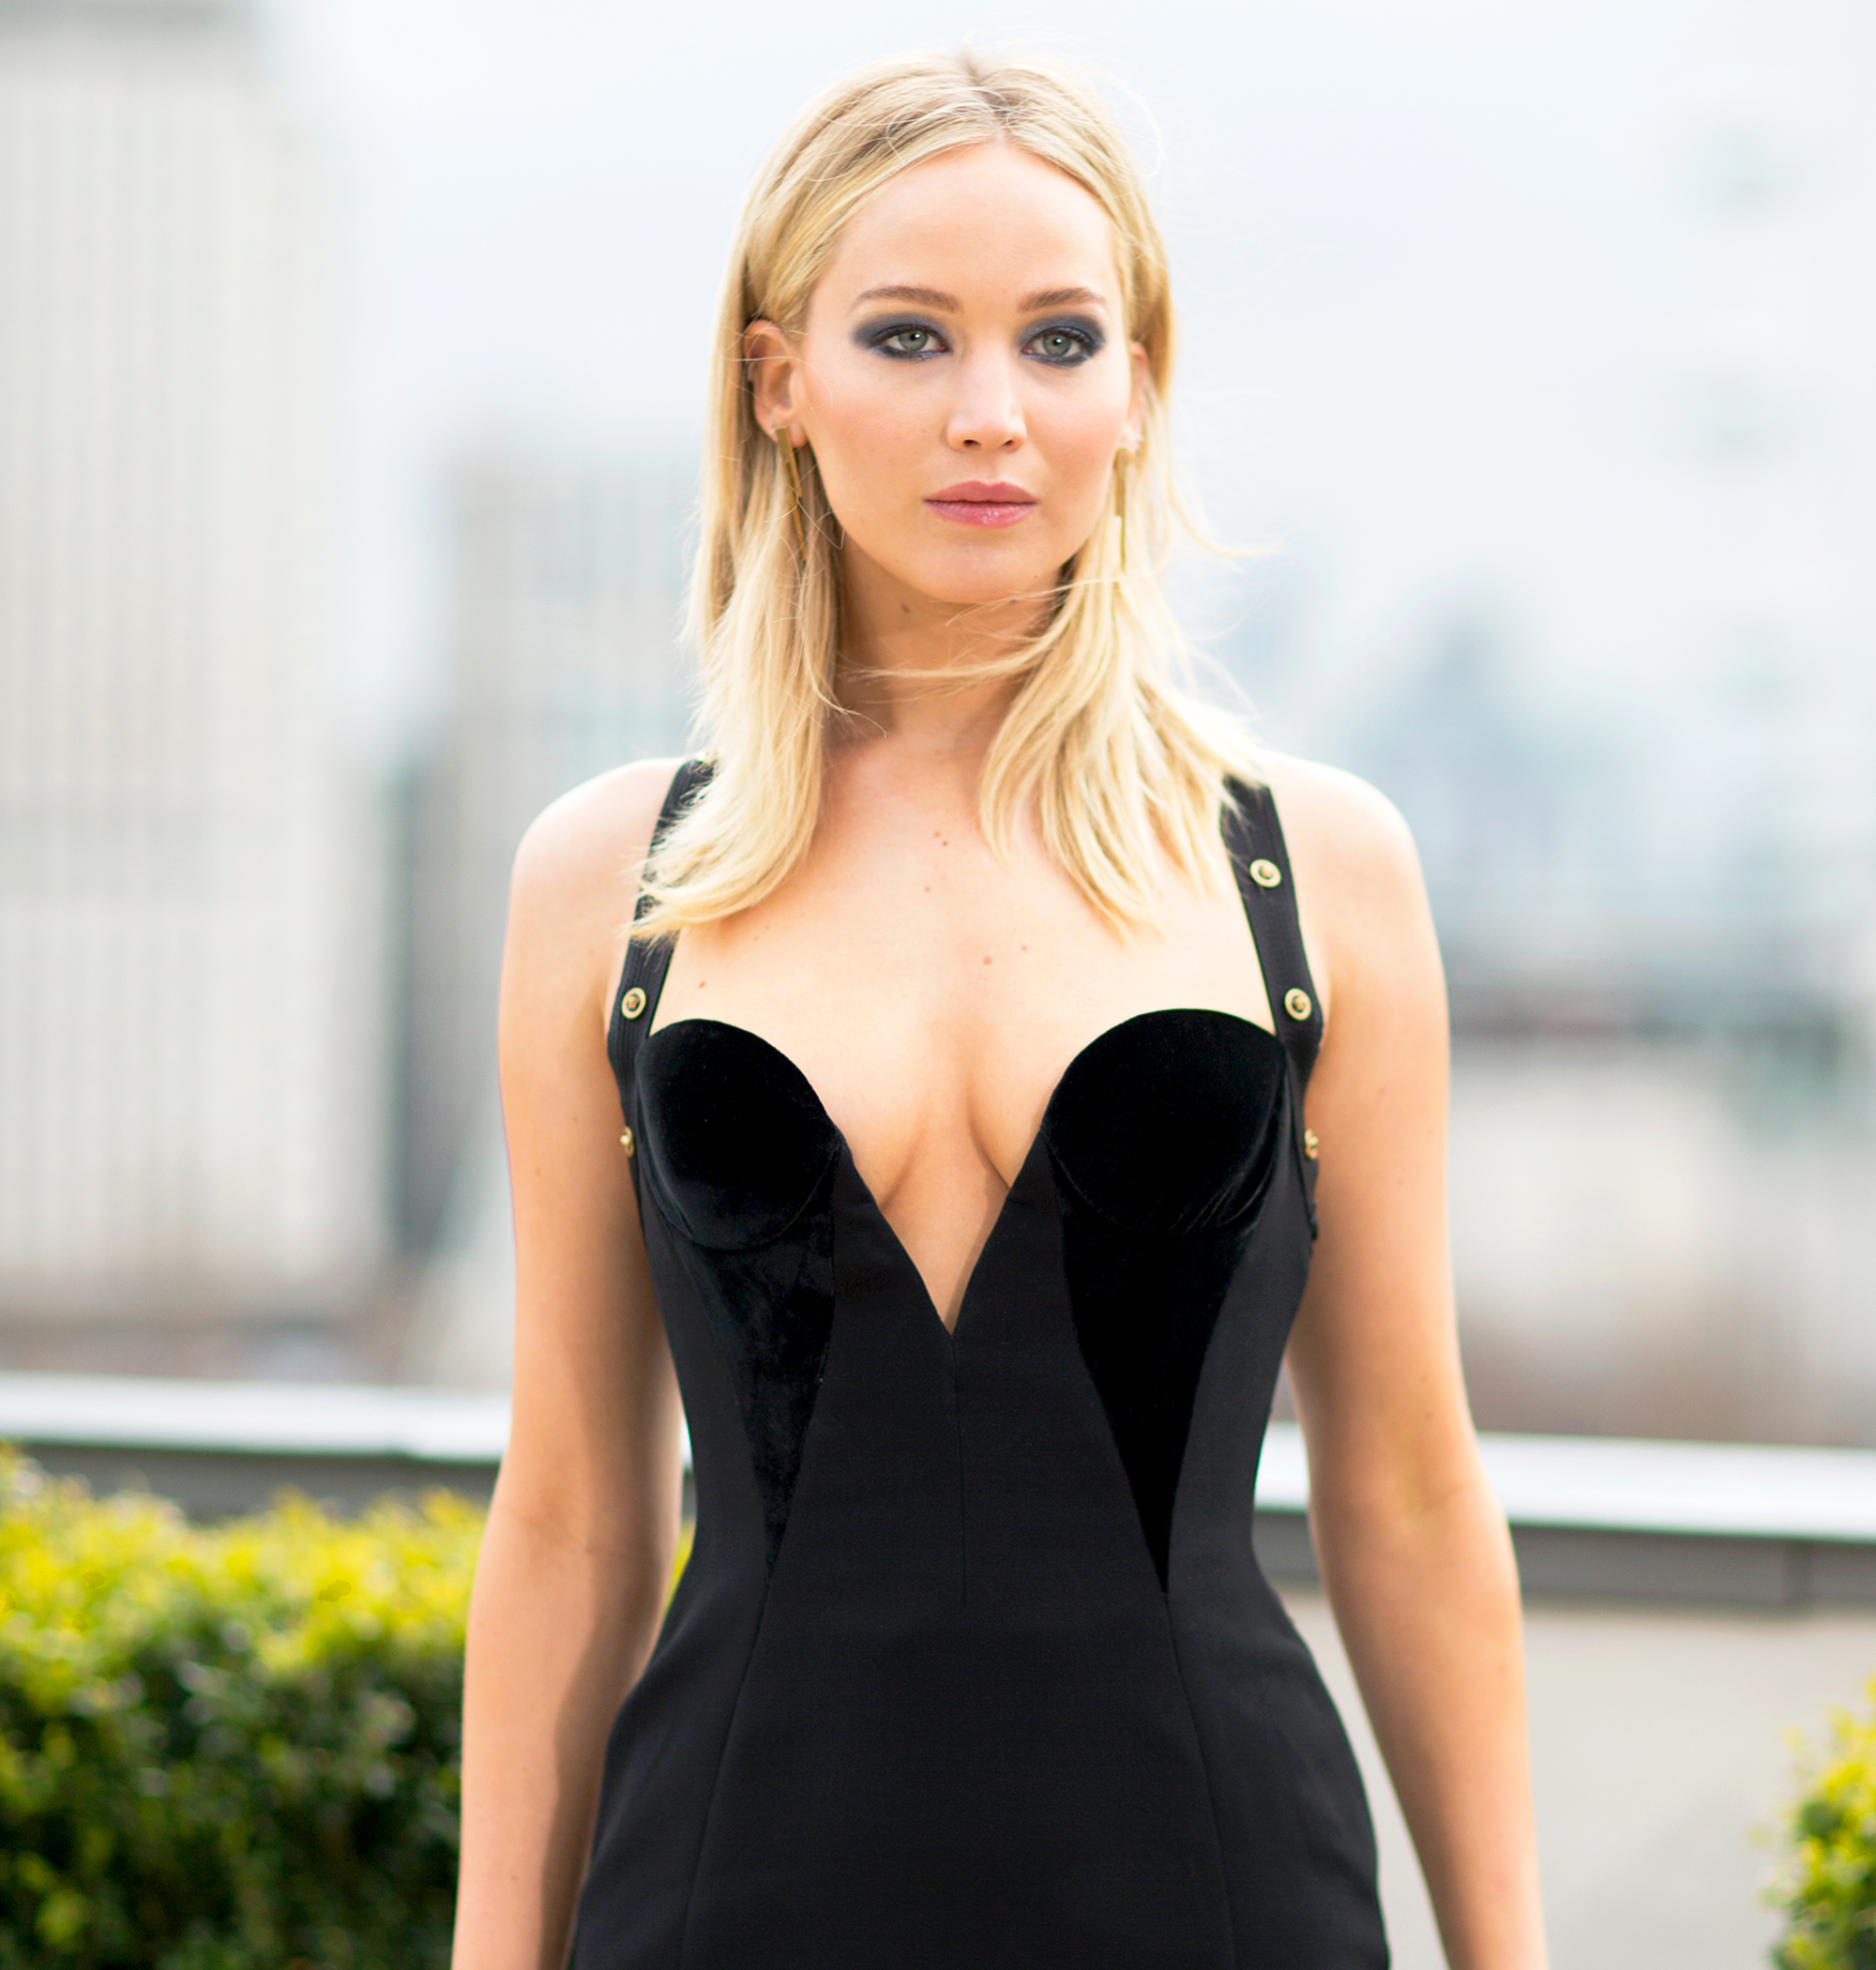 Jennifer Lawrence has announced she will take a break from acting